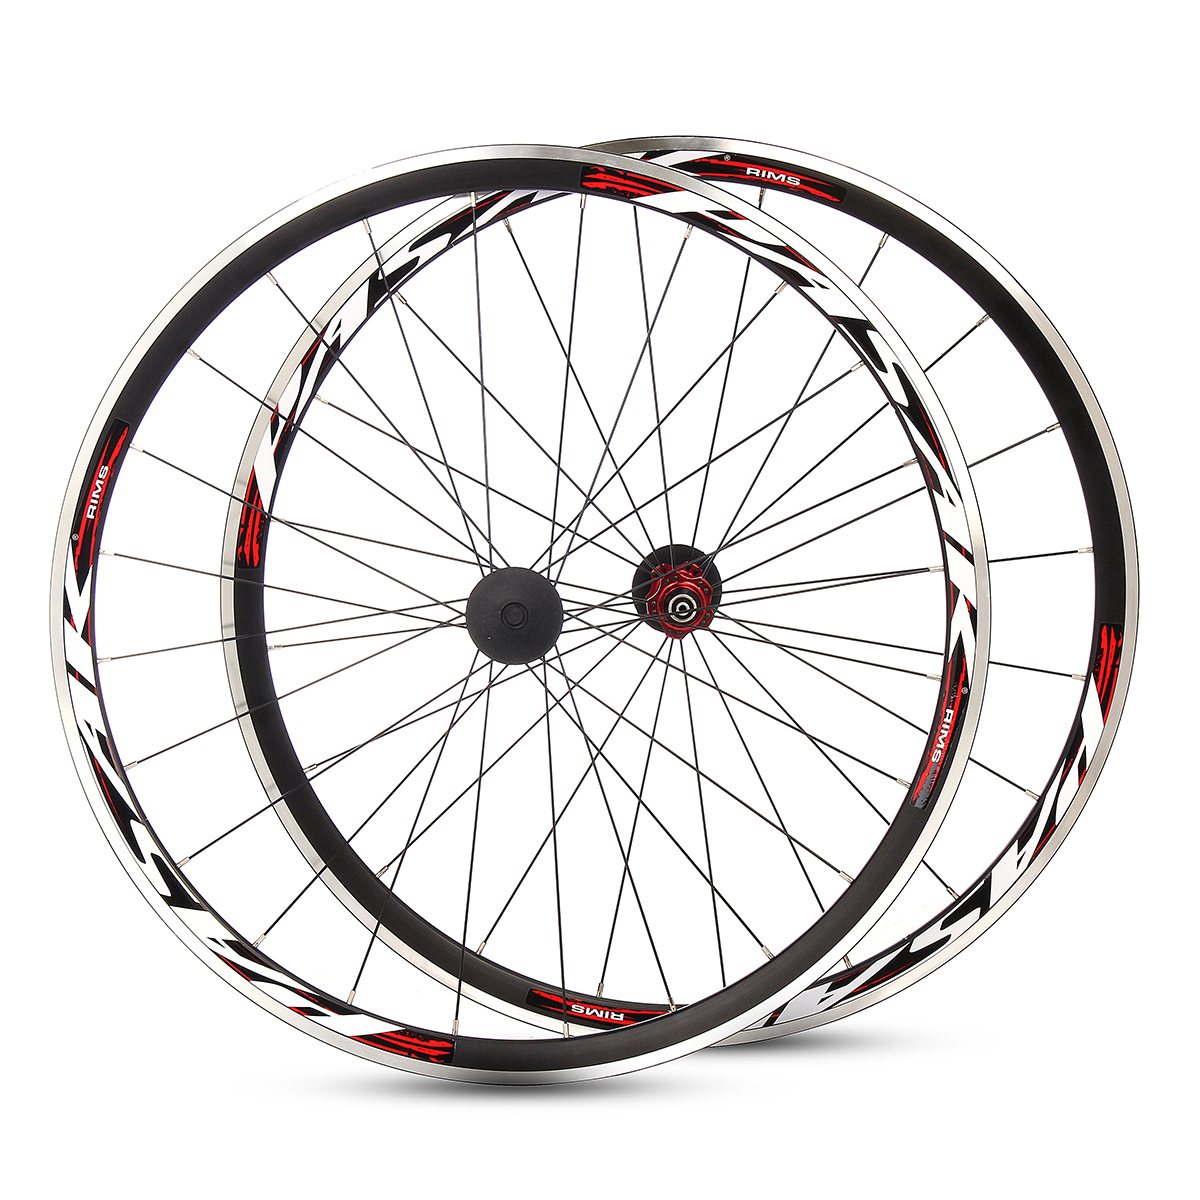 PASAK 700C Ultralight Road Bicycle Wheel Front Rear Whe